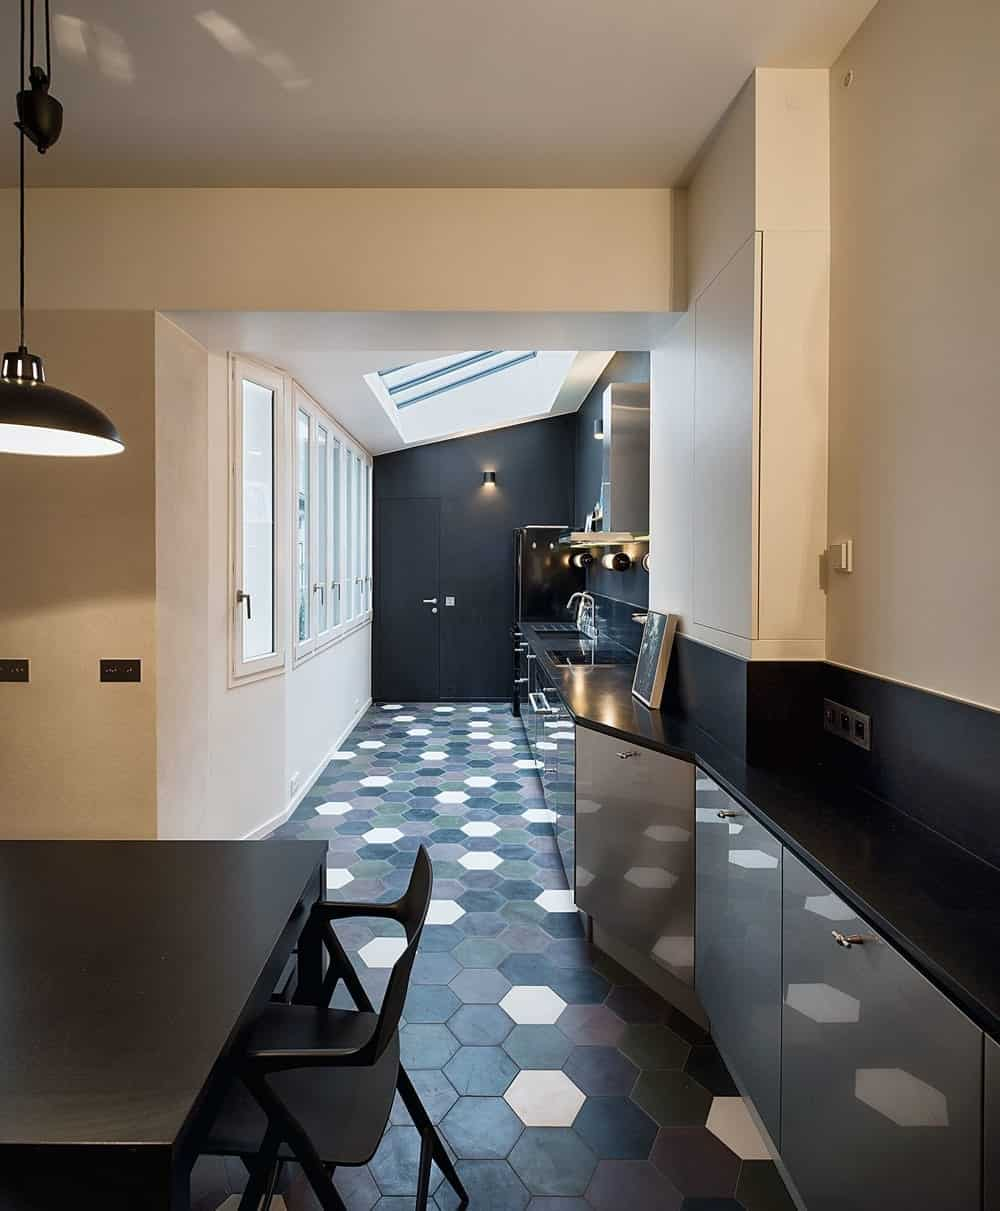 A long kitchen accented with multi-colored hex floor tiles. It includes stainless steel cabinetry topped with black granite counter and vaulted ceiling with skylight bringing natural light in.